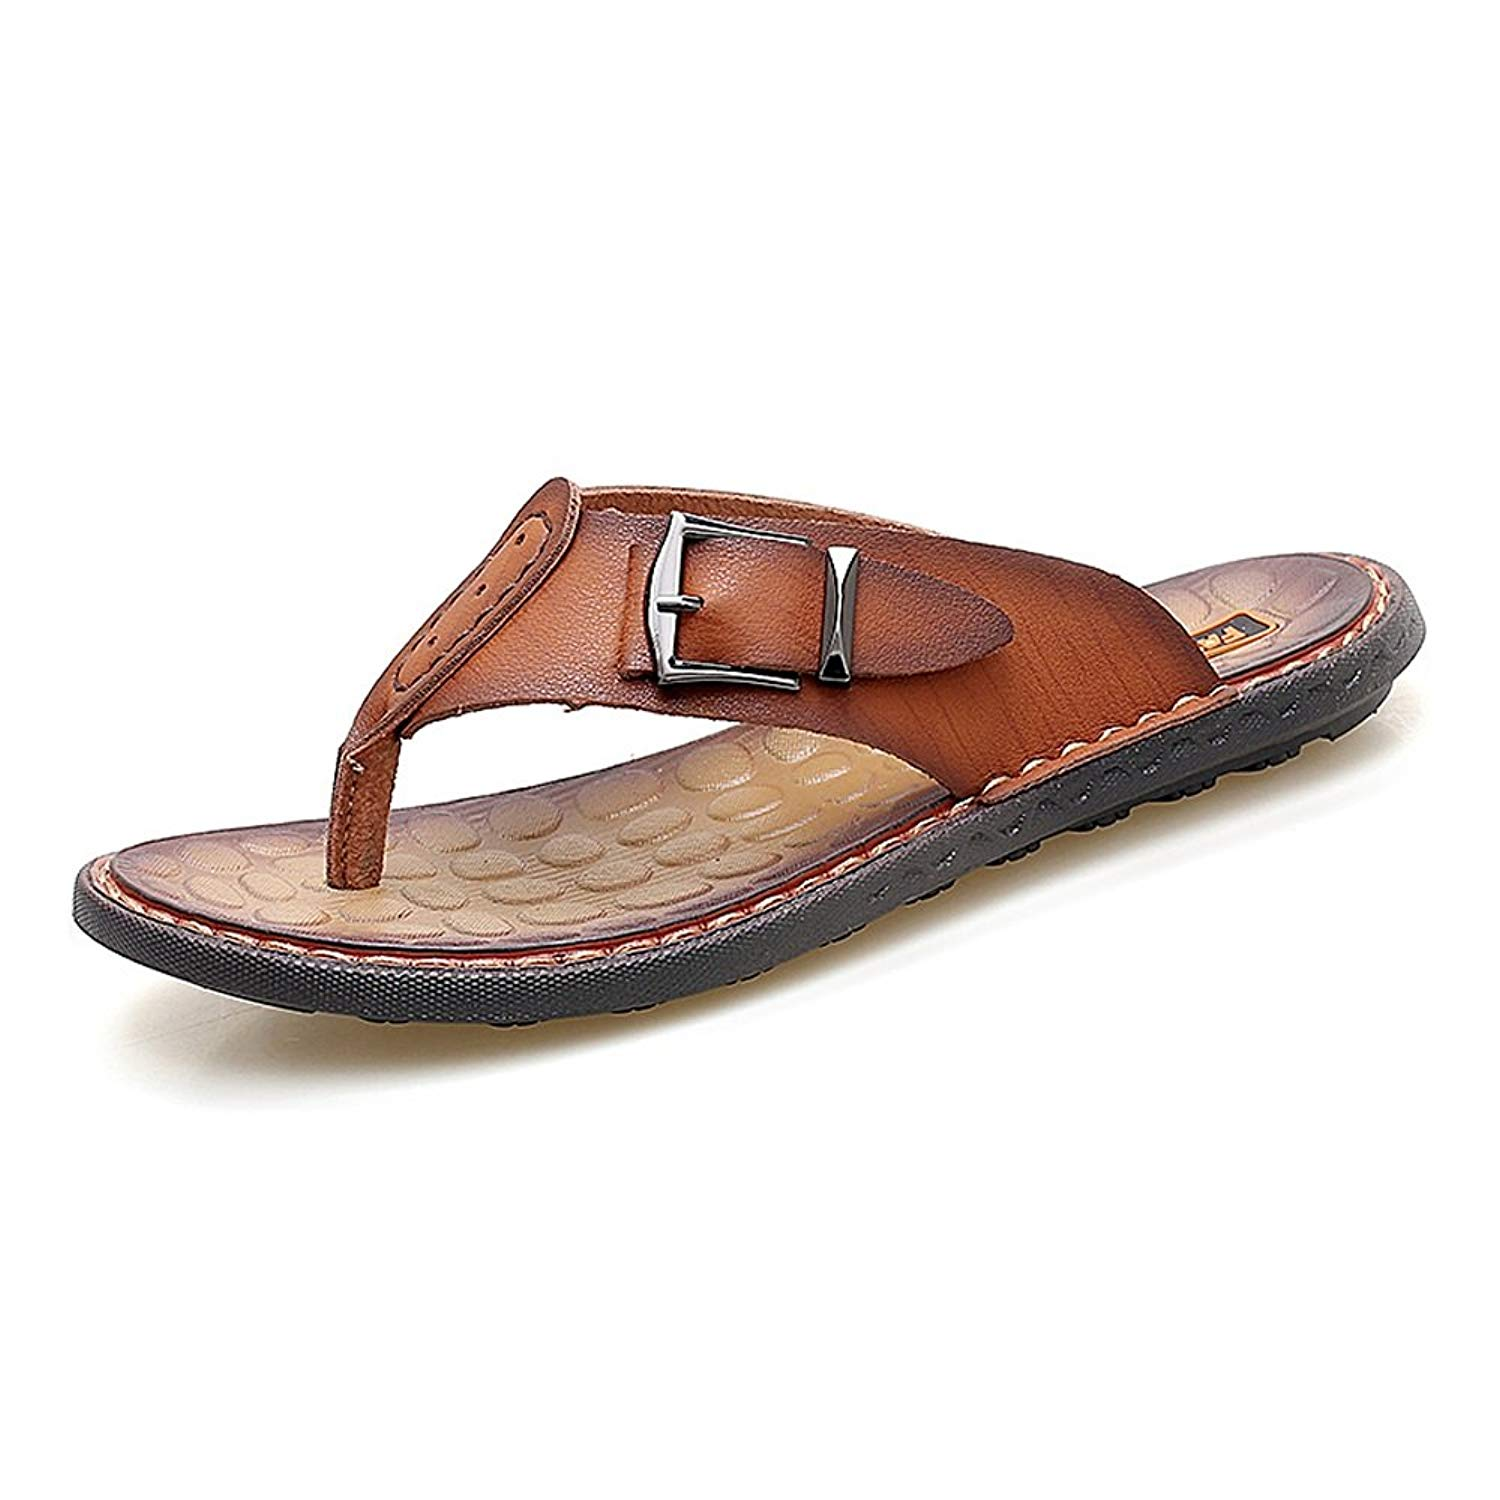 644f662003c265 Get Quotations · CNBEAU Men s Flops Thongs Sandal Slippers Casual Shoes  Genuine Leather Beach Slippers Non-Slip Soft